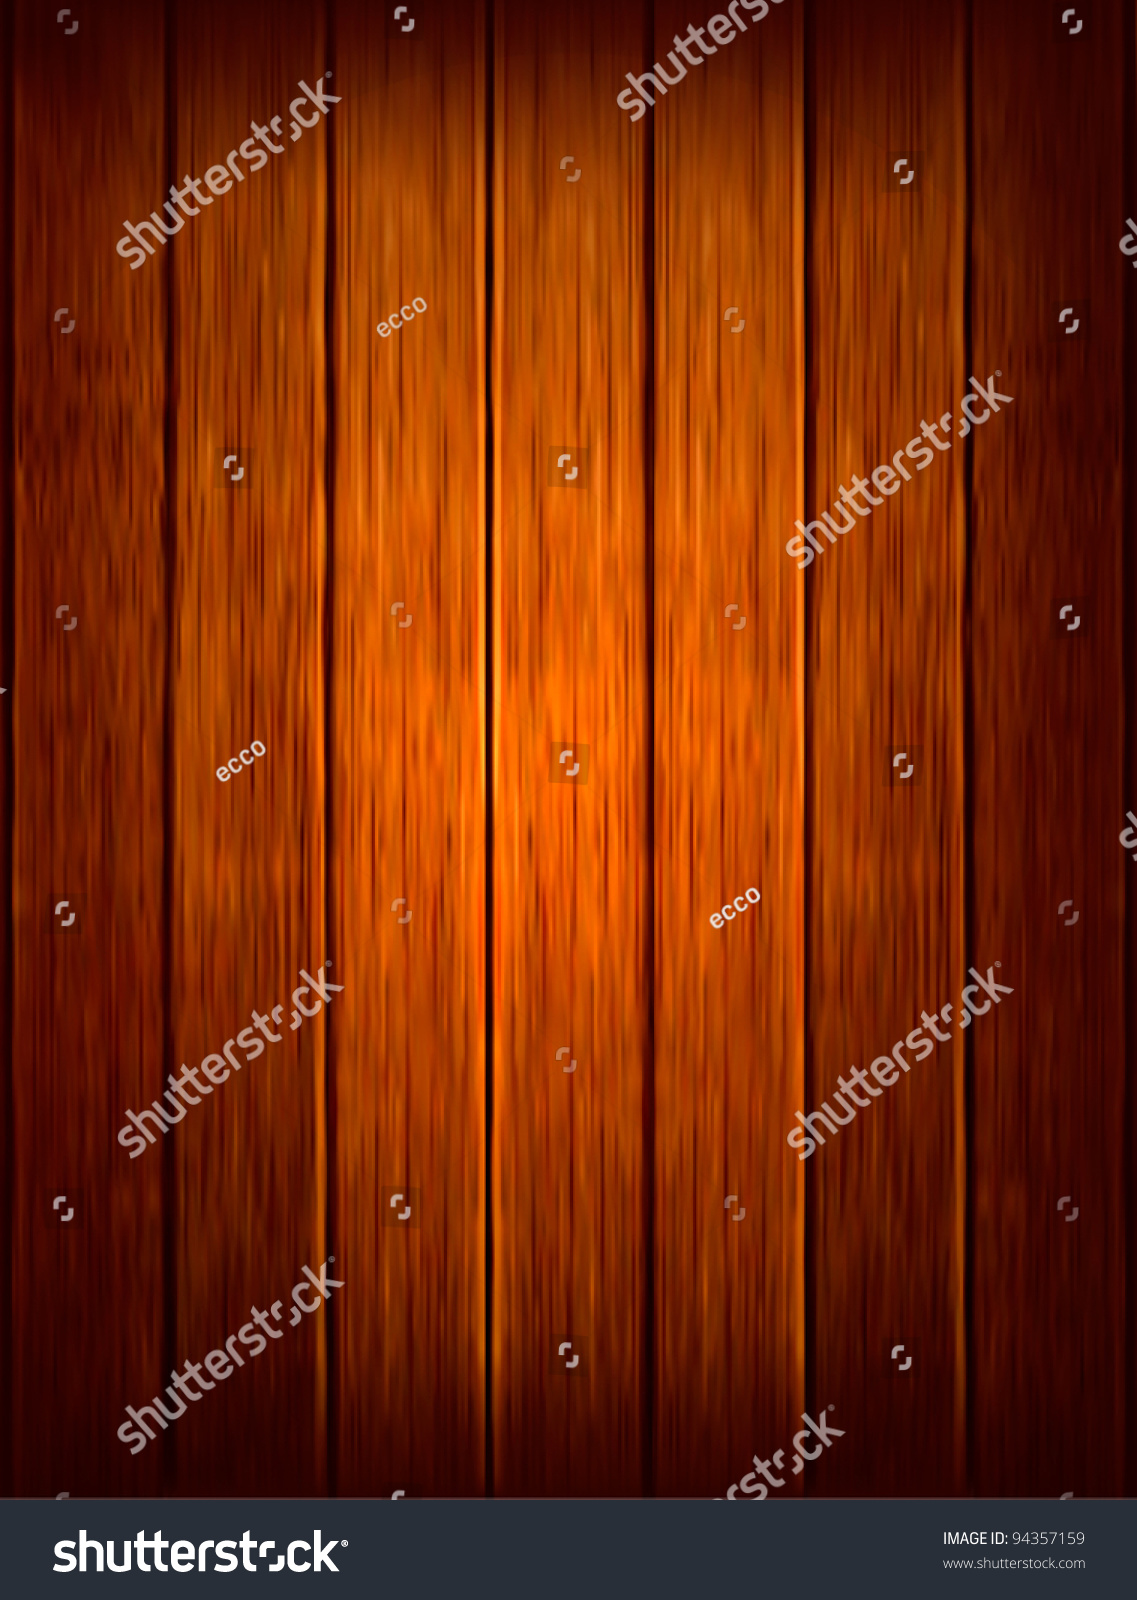 Dark Wood Background. Vector Illustration - 94357159 ...